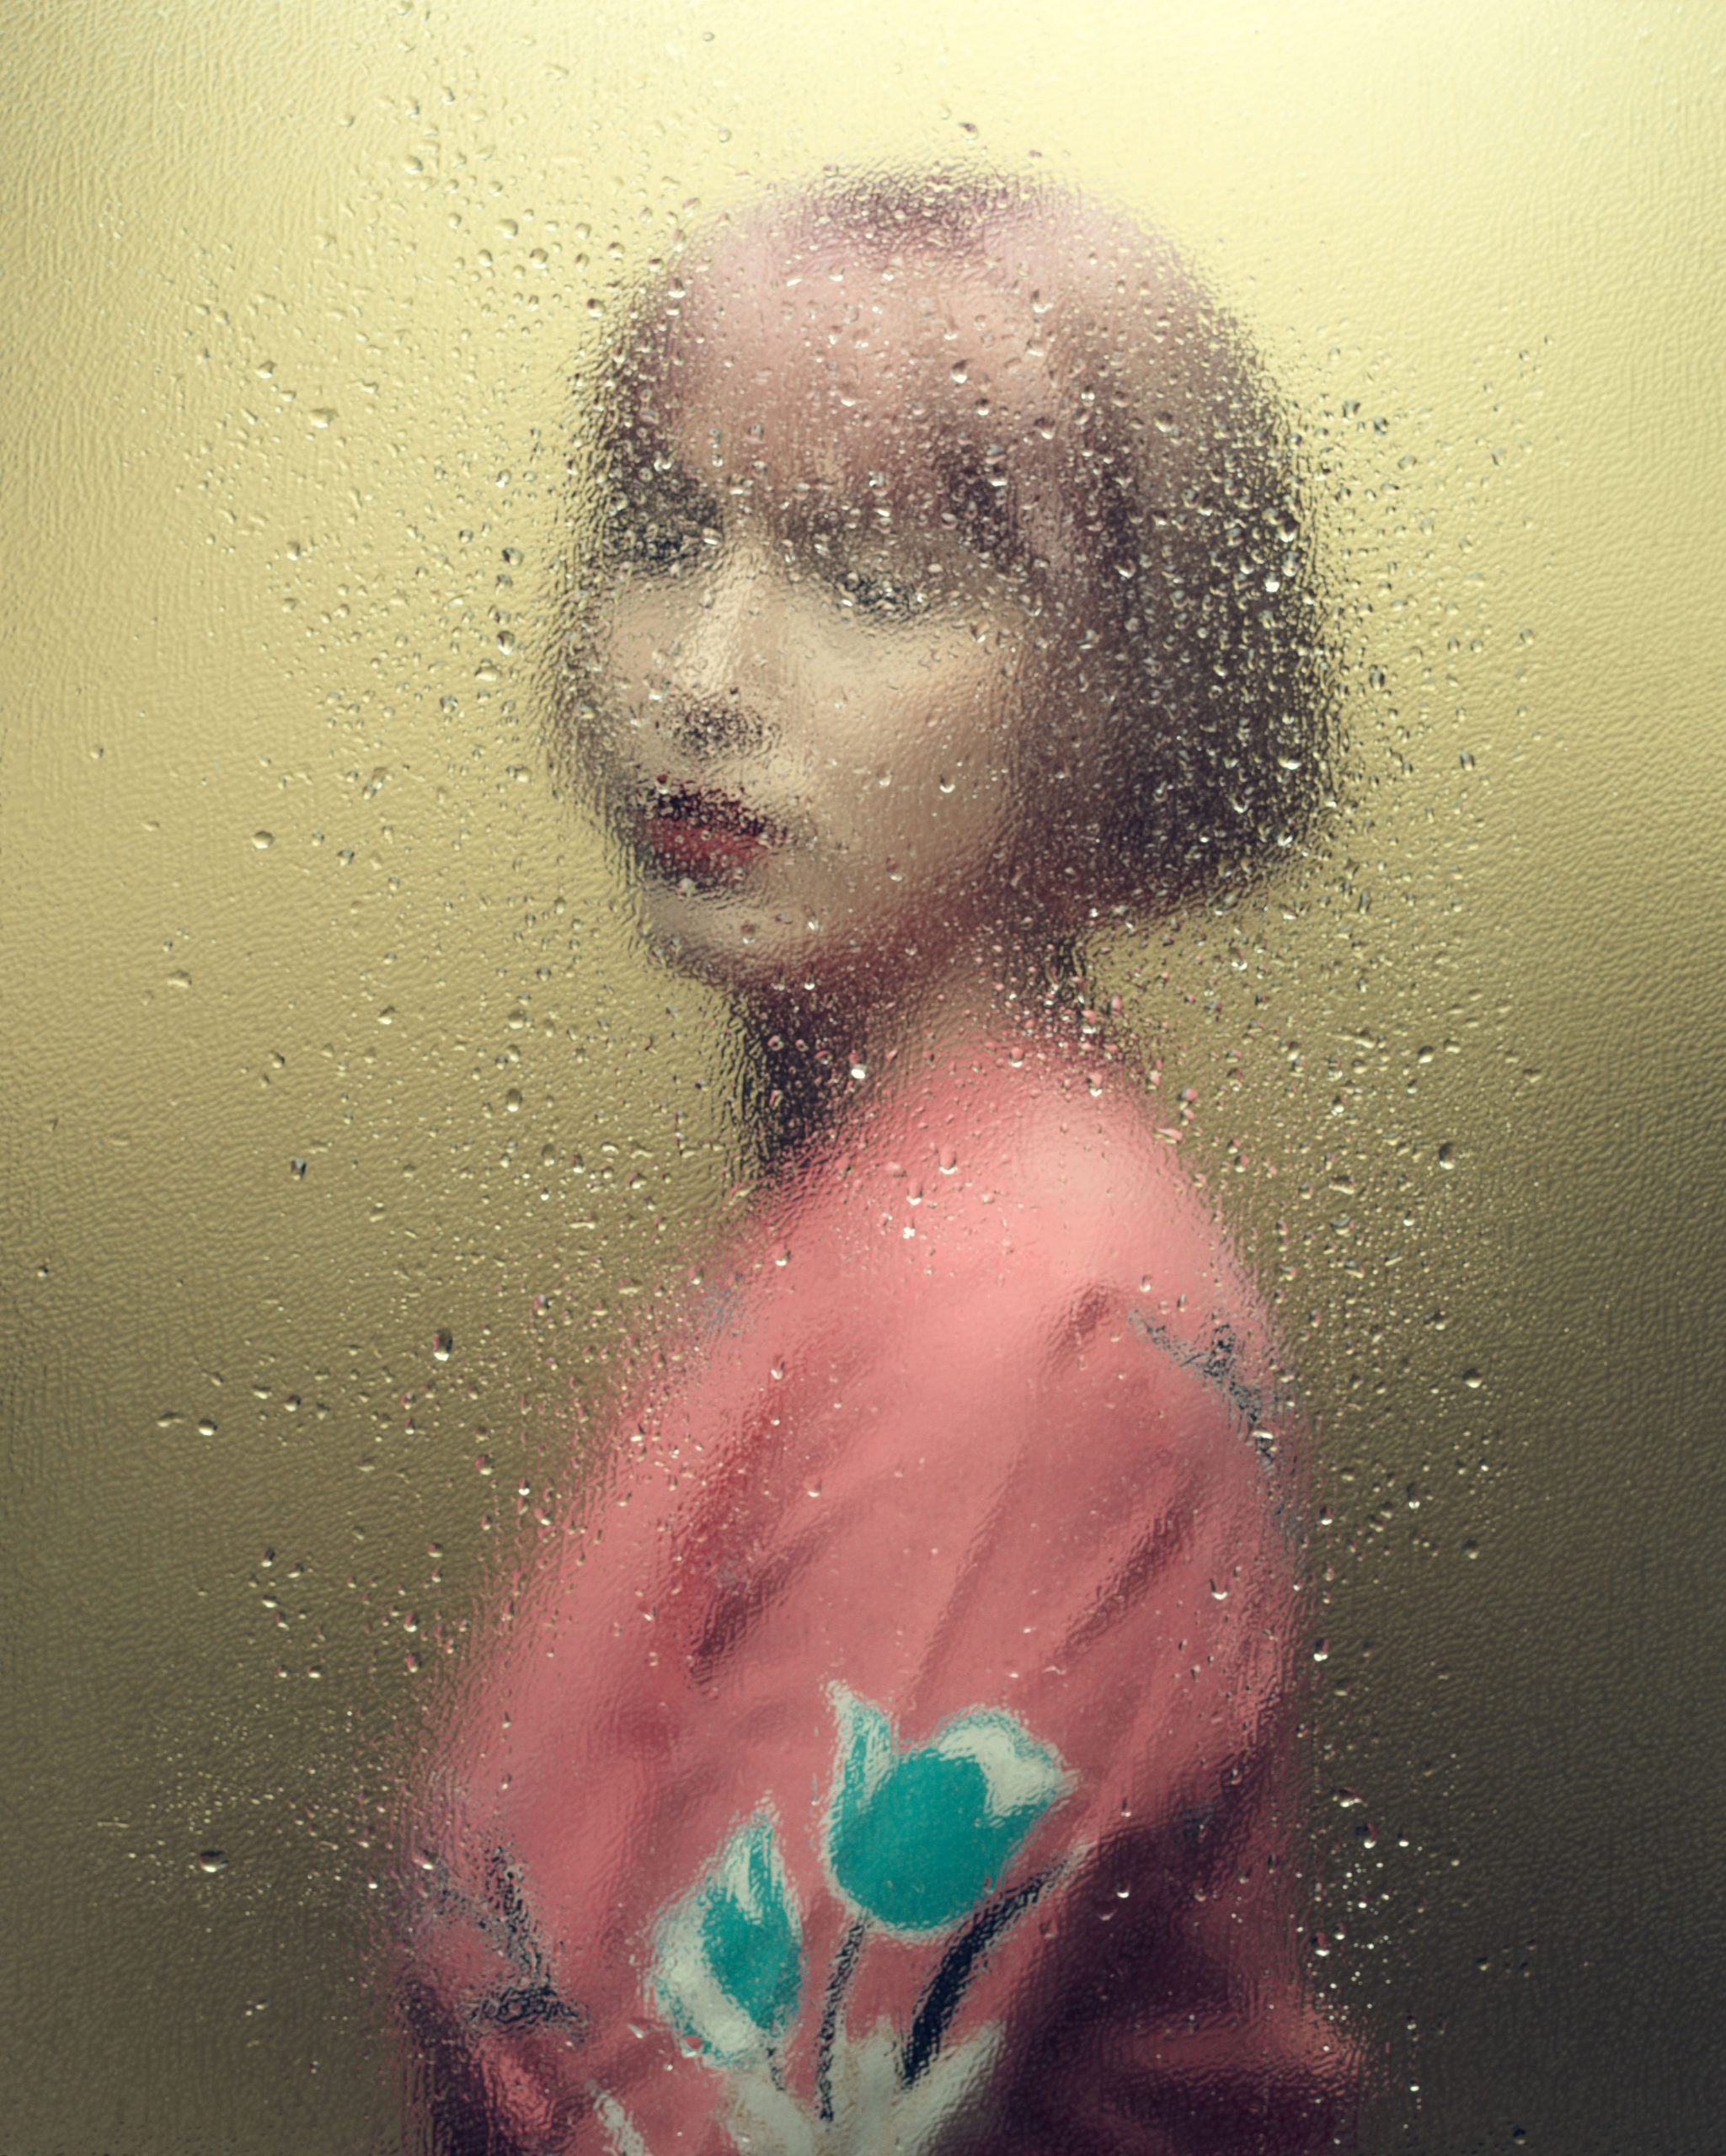 portrait image of a woman dressed in pink by photographer Jean-François Houde